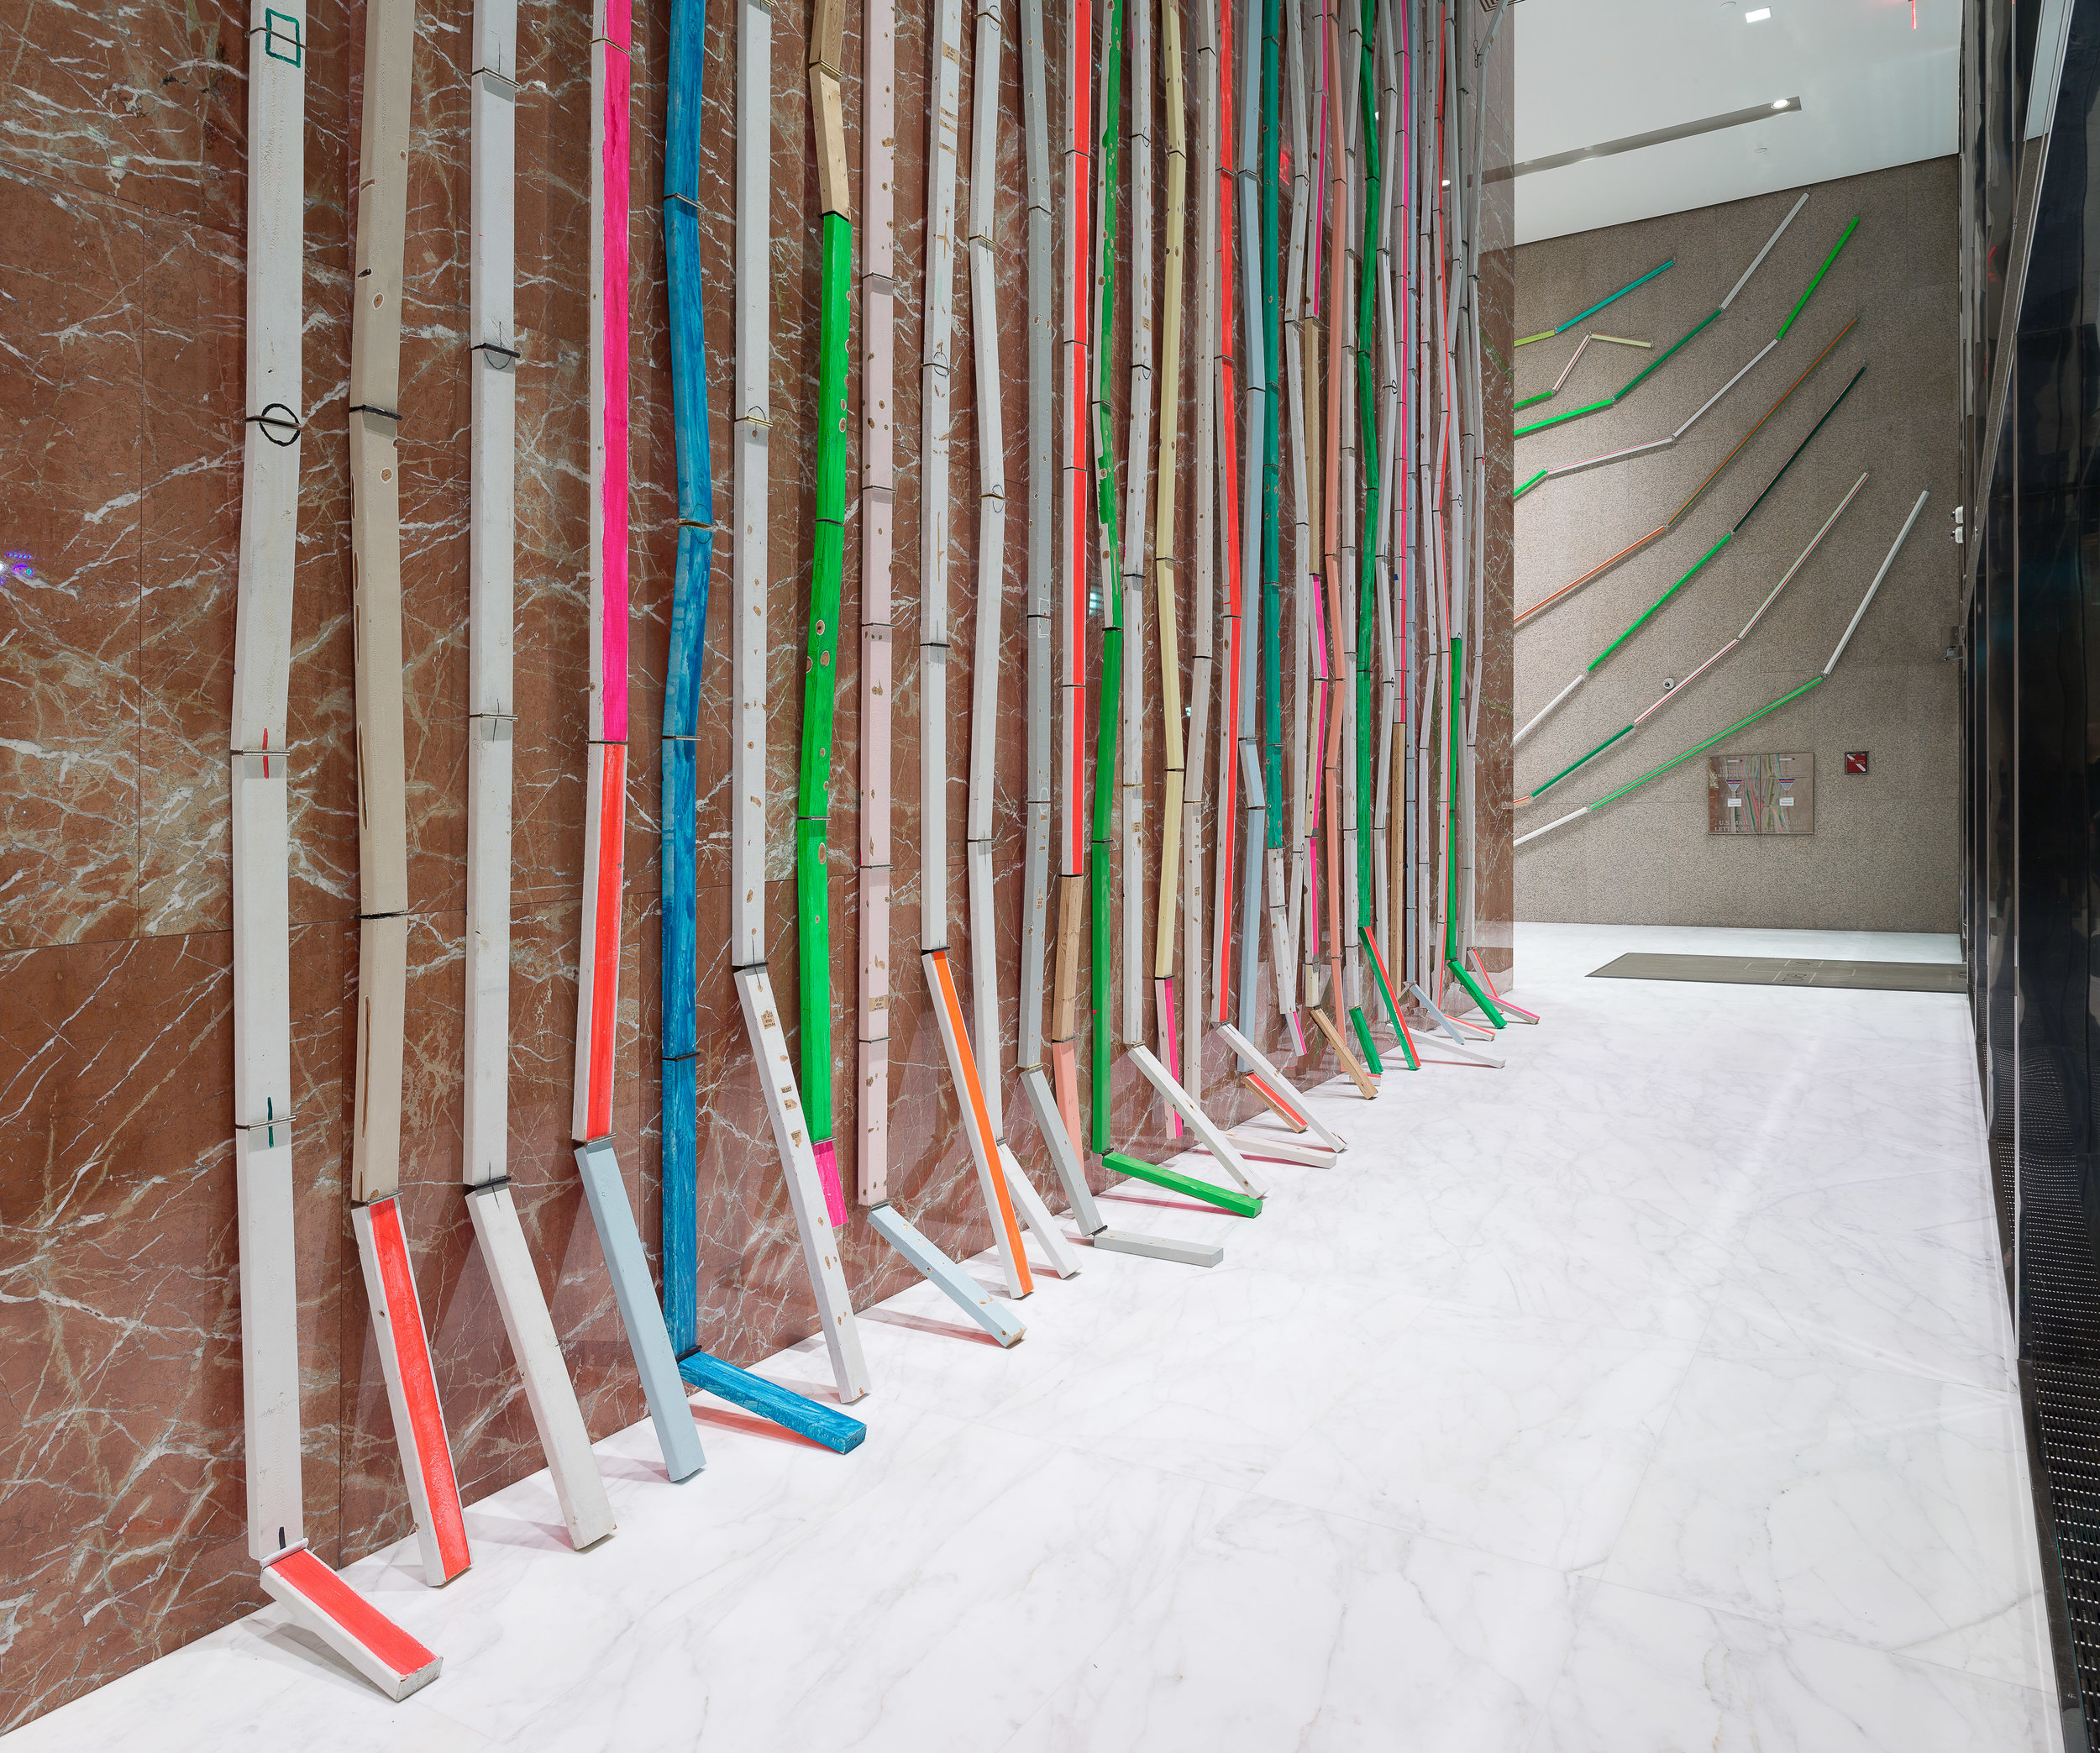 (4) Cordy Ryman-Installation view detail-2017-Tower 49-west lobby looking east.jpg